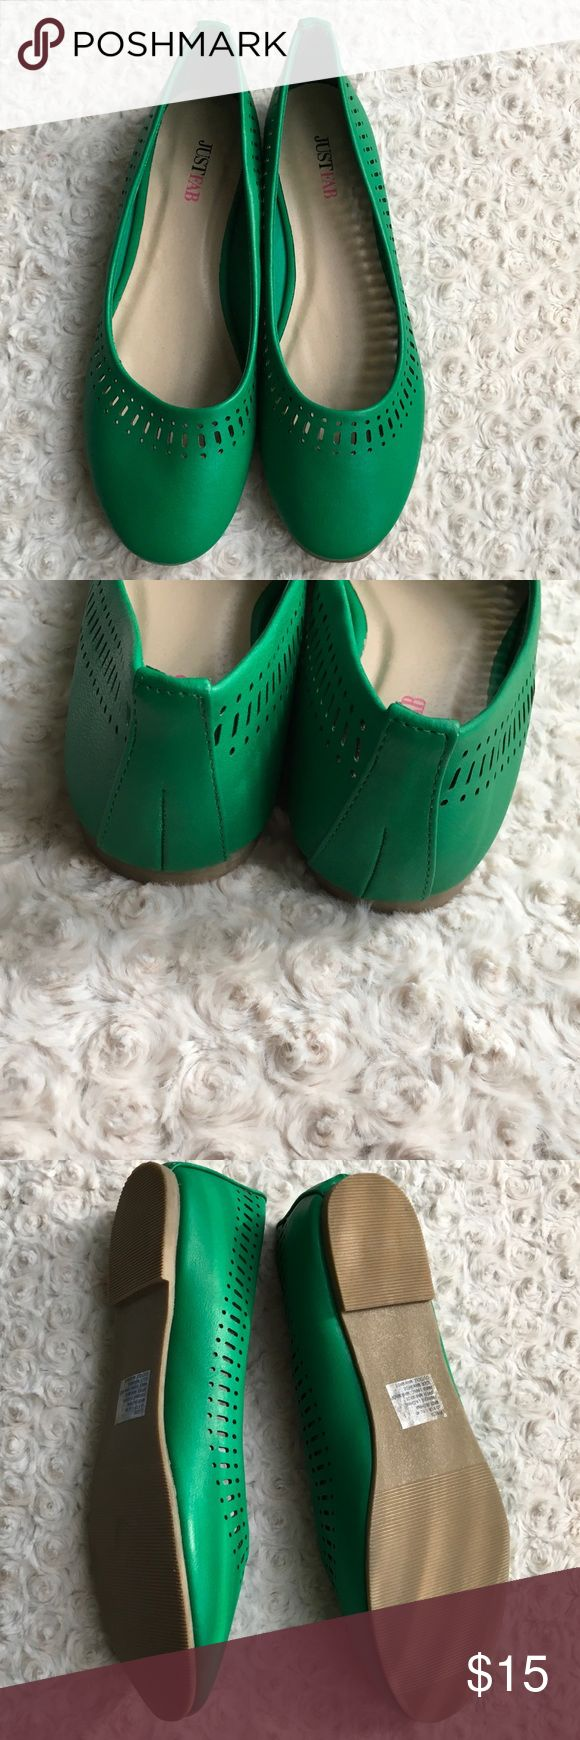 JustFab green flats Ready to Ship! BRAND NEW JustFab flats in an oh so cute green color. Can be worn now with leggings and sweaters or jeans and blazers. Can wear this style into spring and summer. JustFab Shoes Flats & Loafers